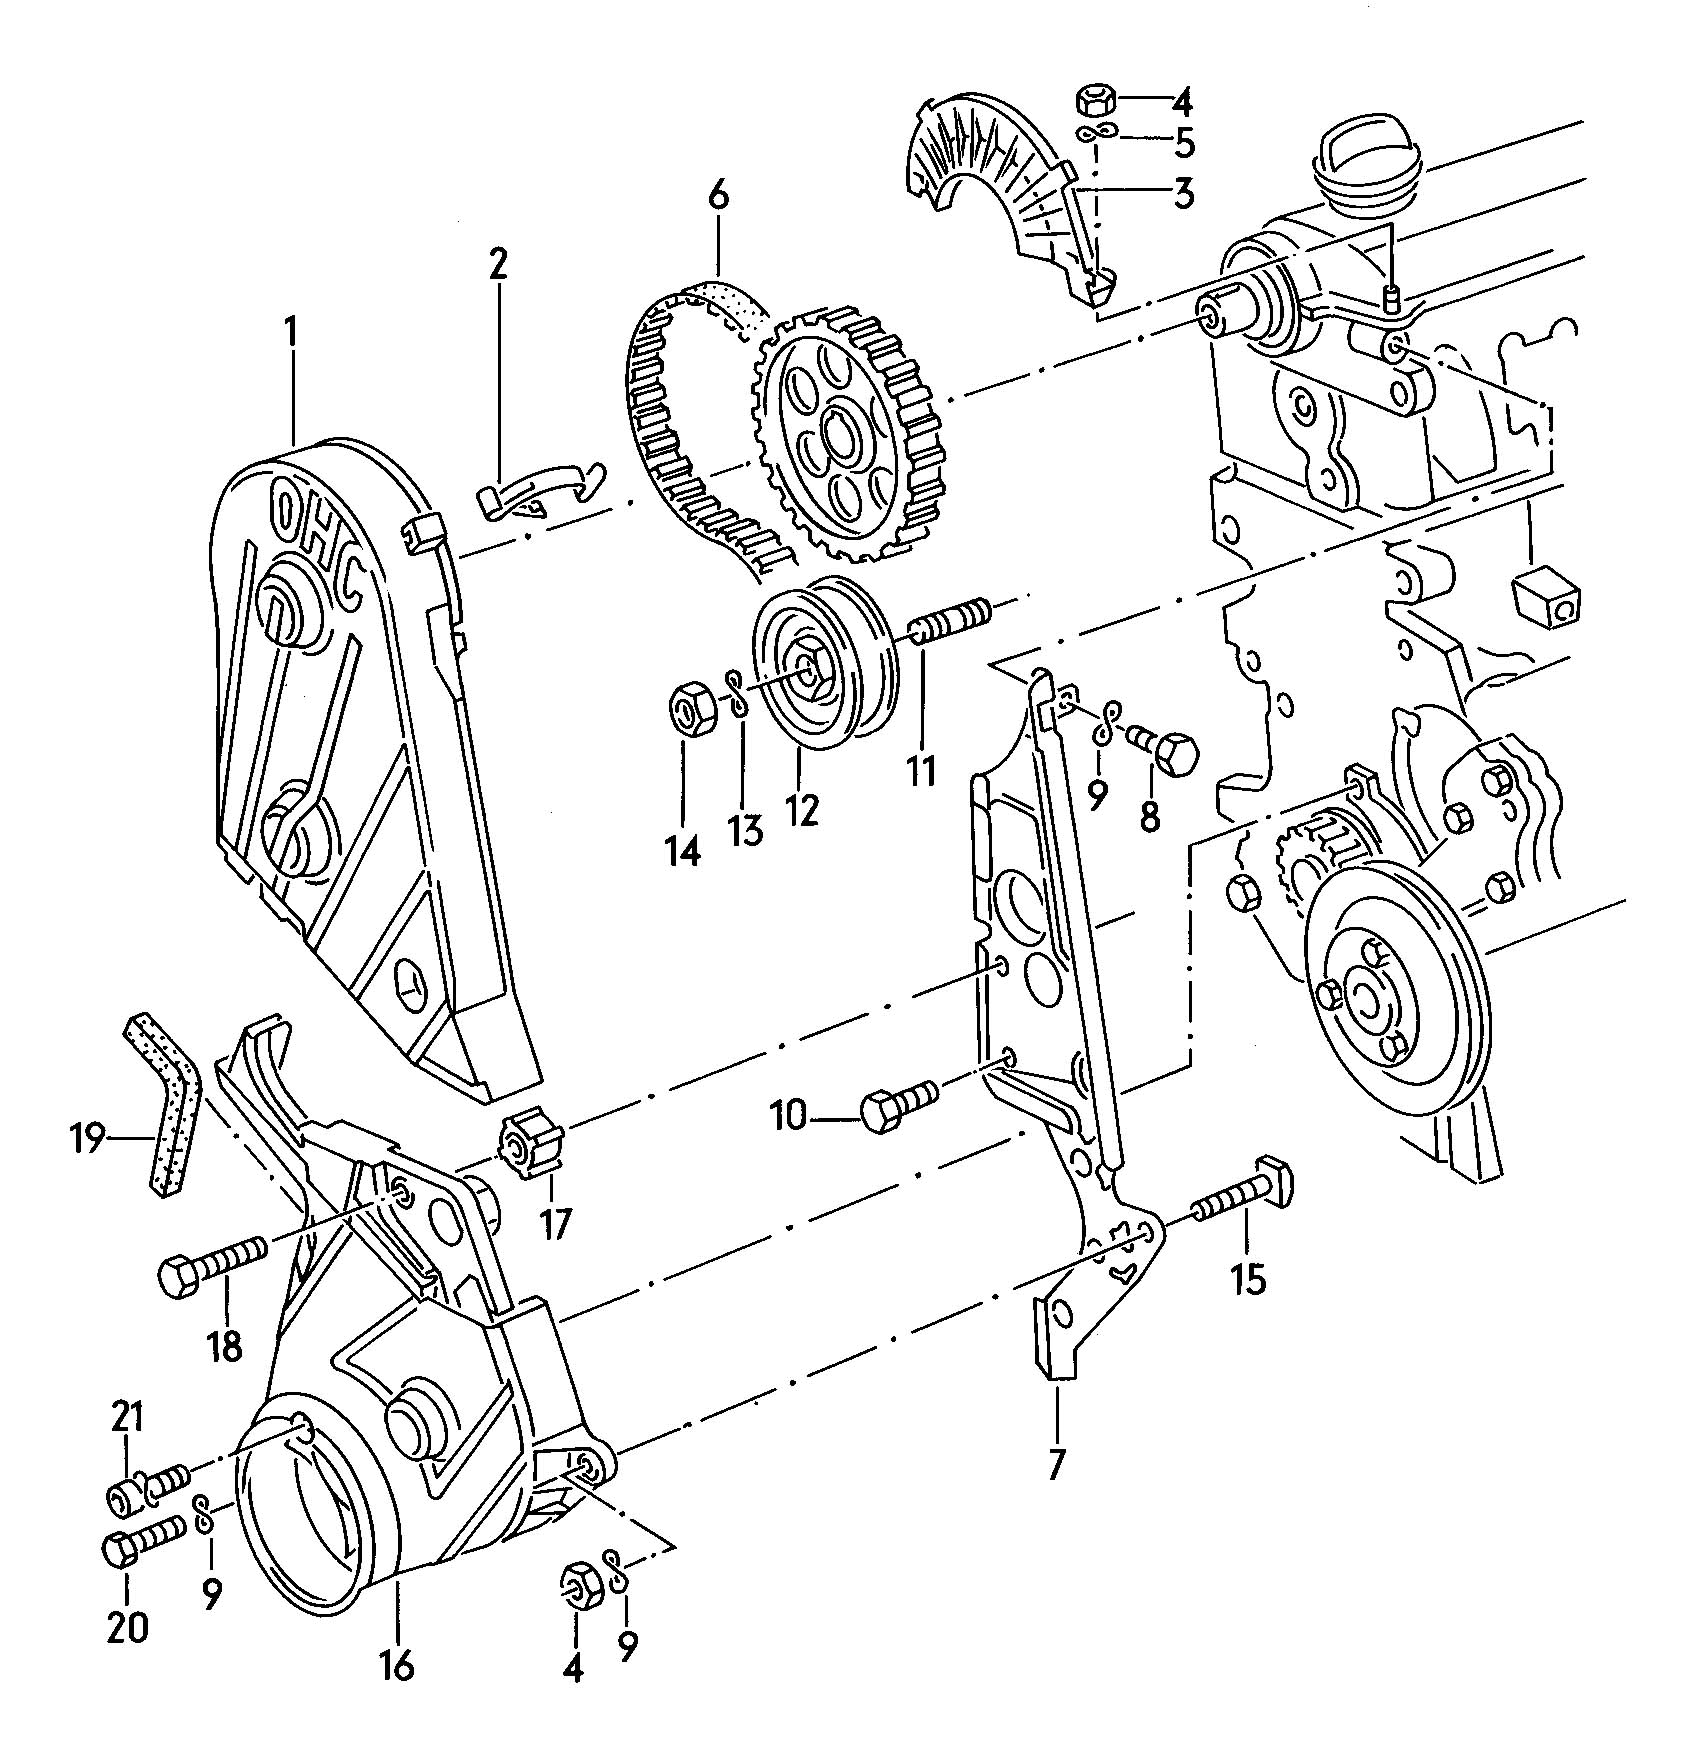 88 Vw Fox Fuse Diagram Great Design Of Wiring 2011 Volkswagen Jetta Se Imageresizertool Com Atlas